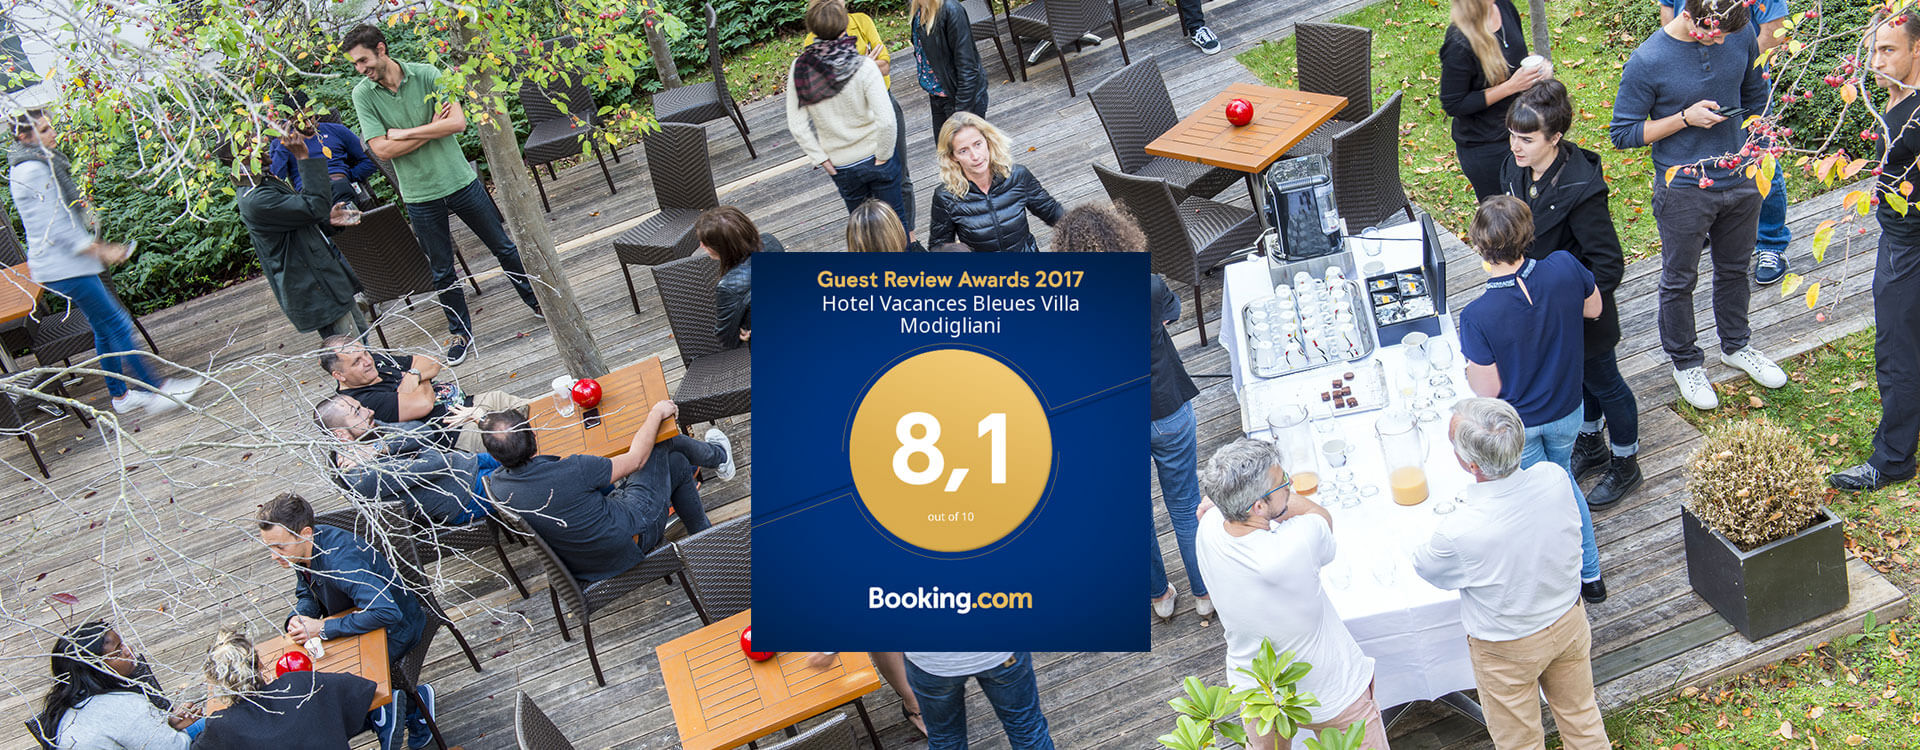 Awards 2017 booking.com - Hôtel*** Paris La Villa Modigliani